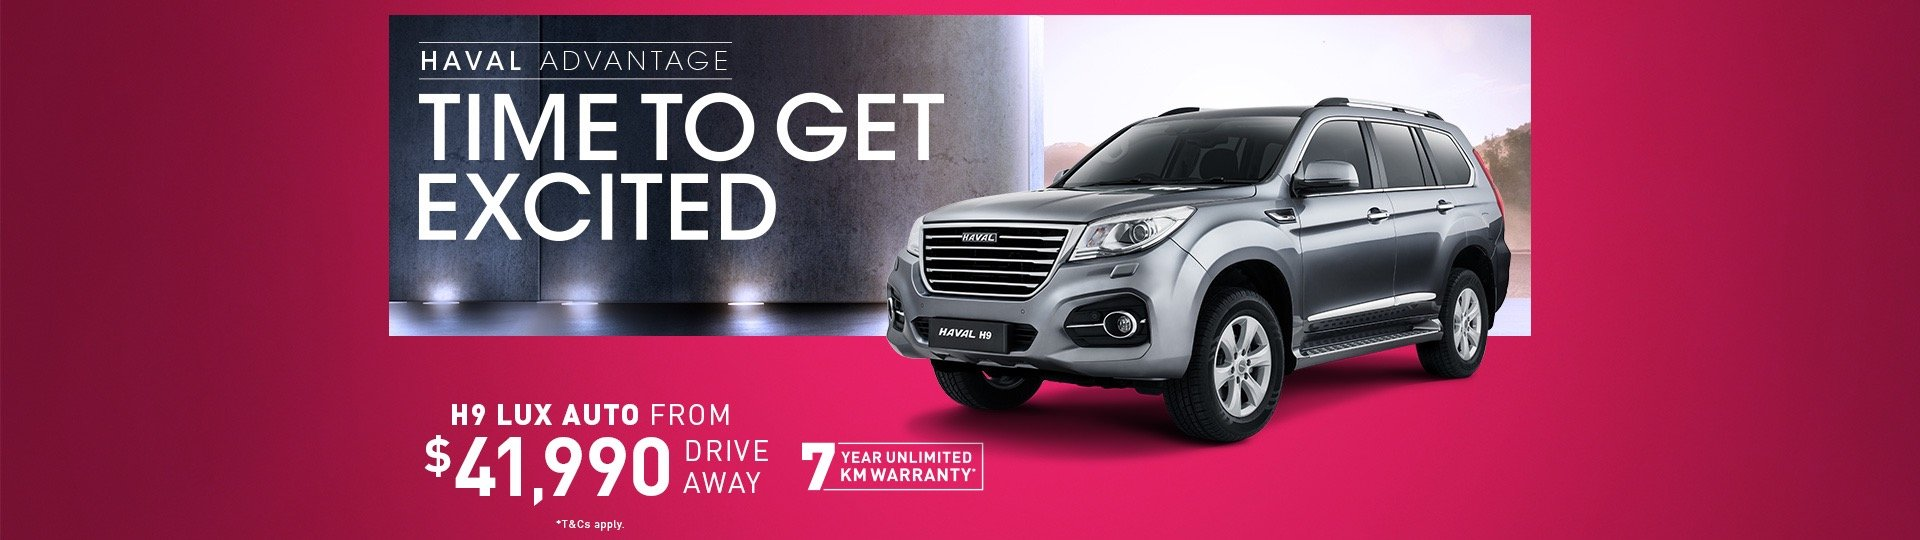 Haval H9 from $41,990 driveaway